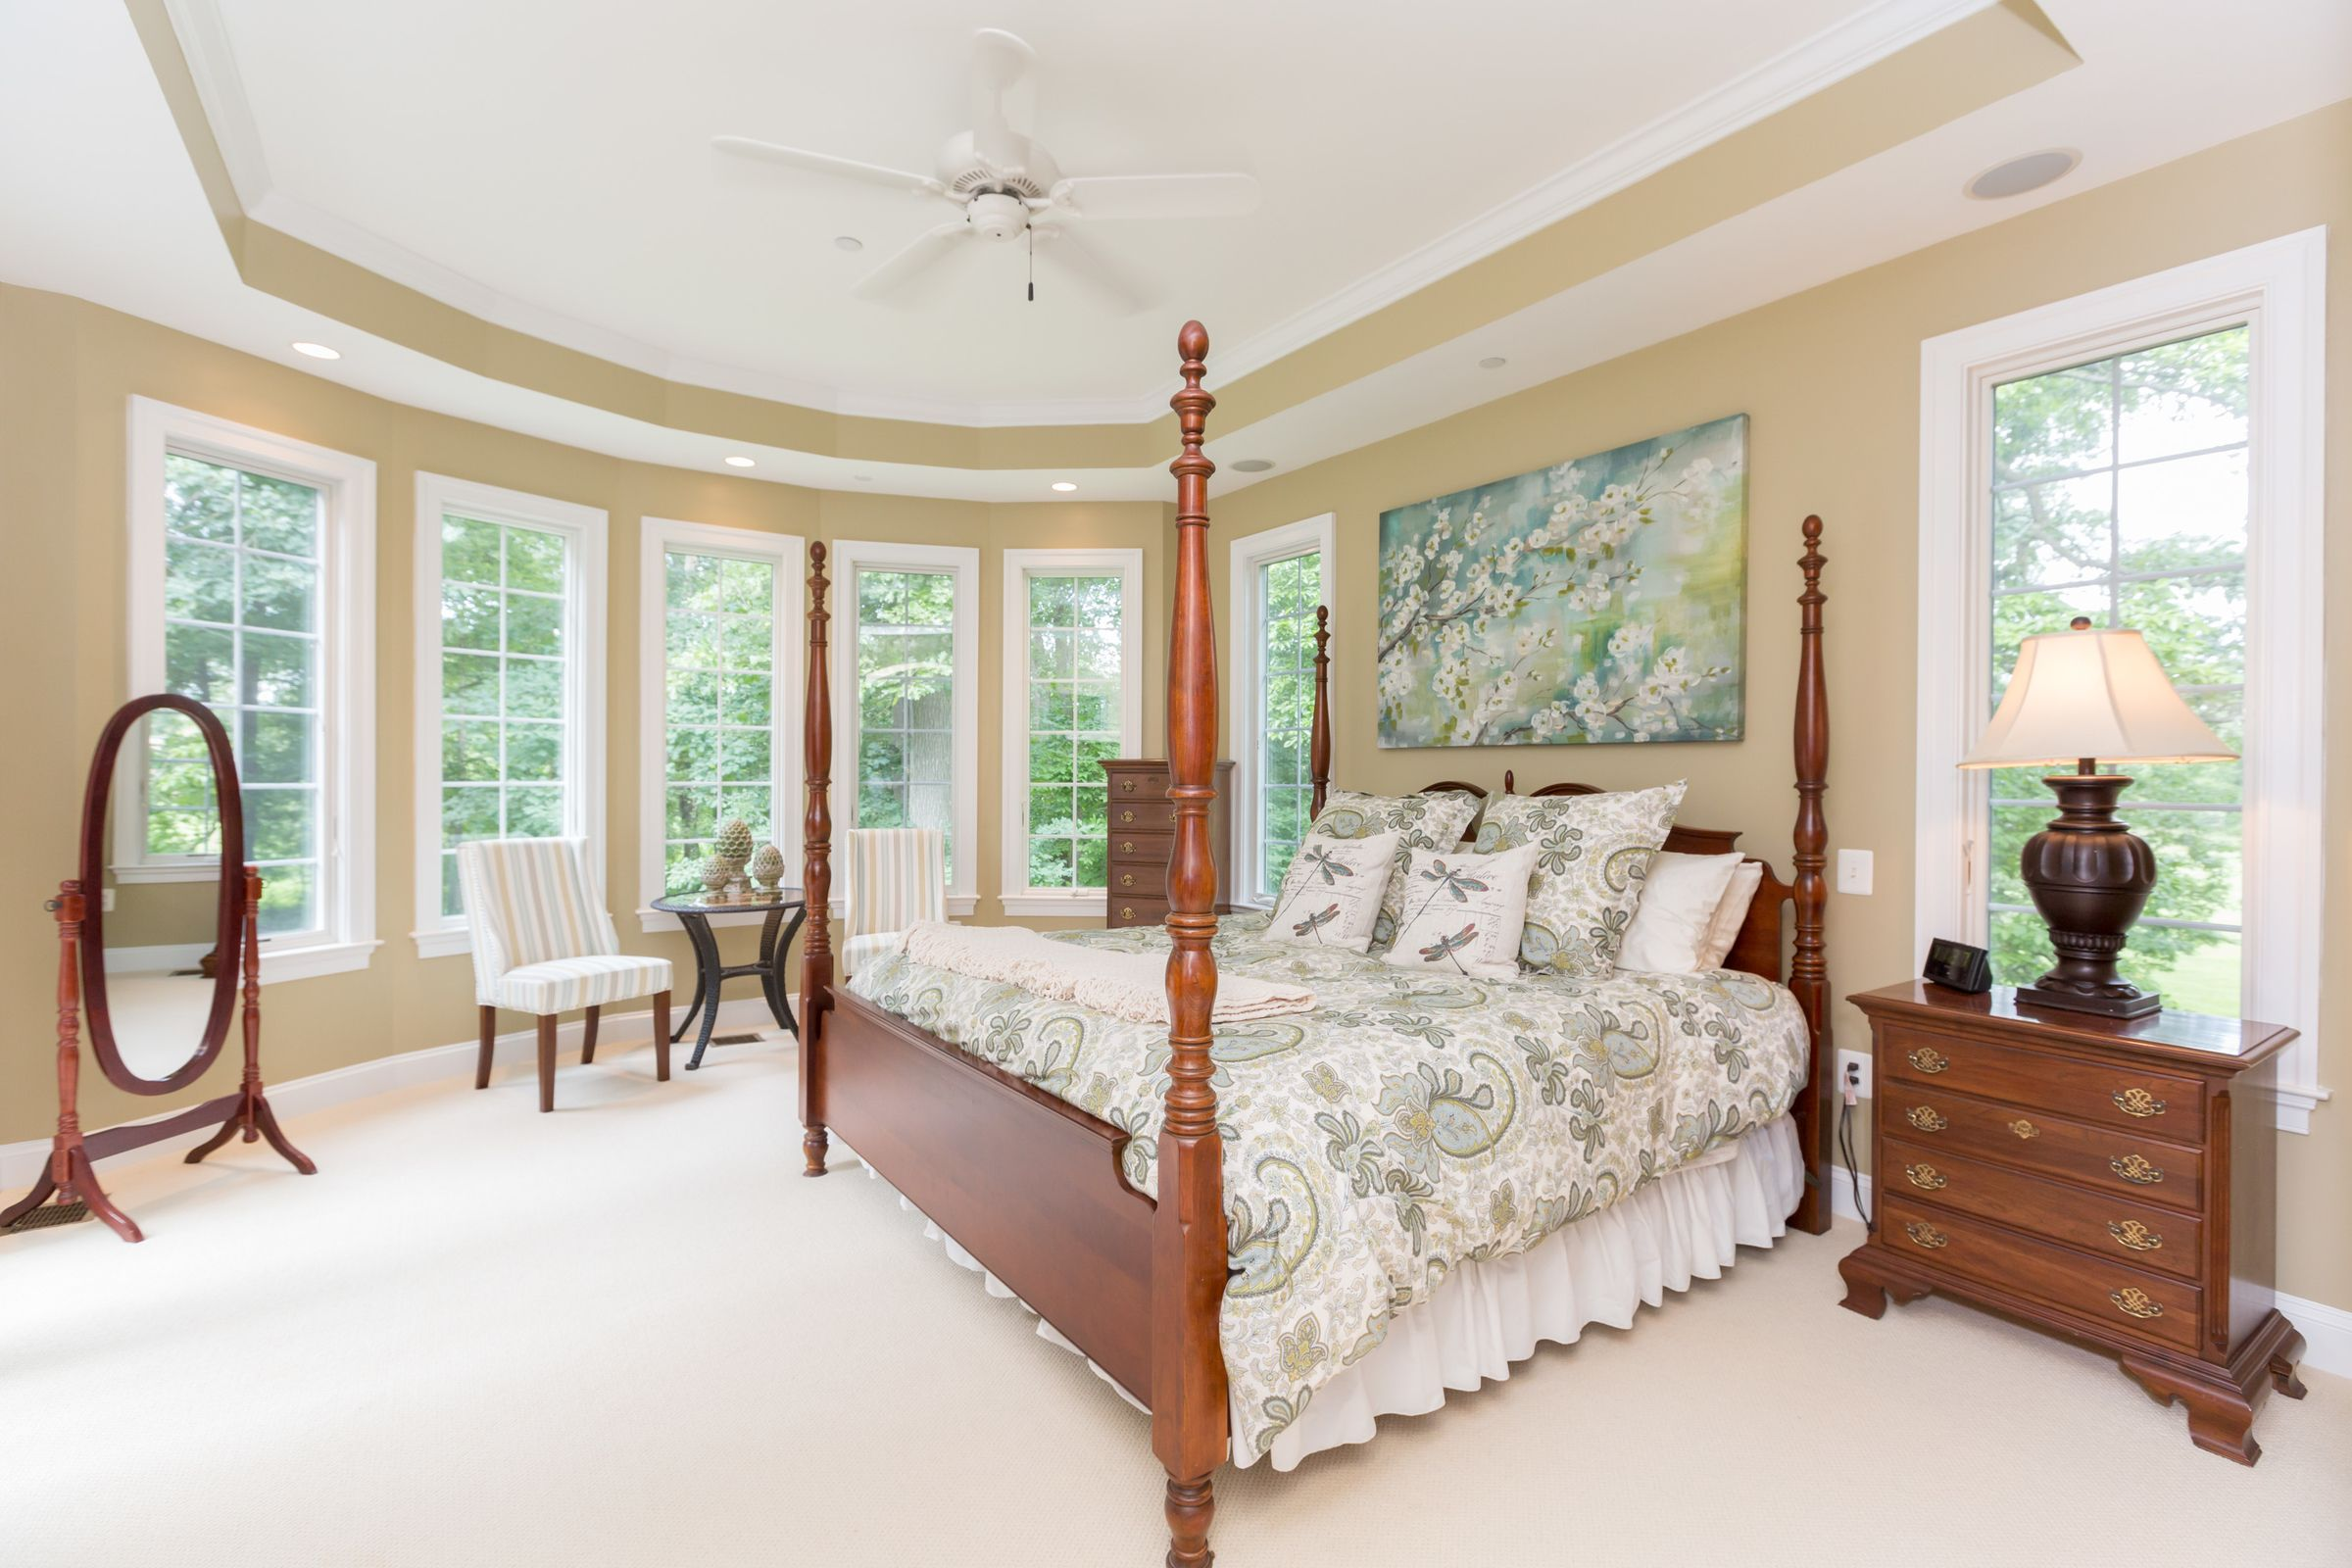 Bedroom | 2602 Triadelphia Lake Road, Brookeville MD | TTR Sotheby's International Realty | Listed at $1,225,000